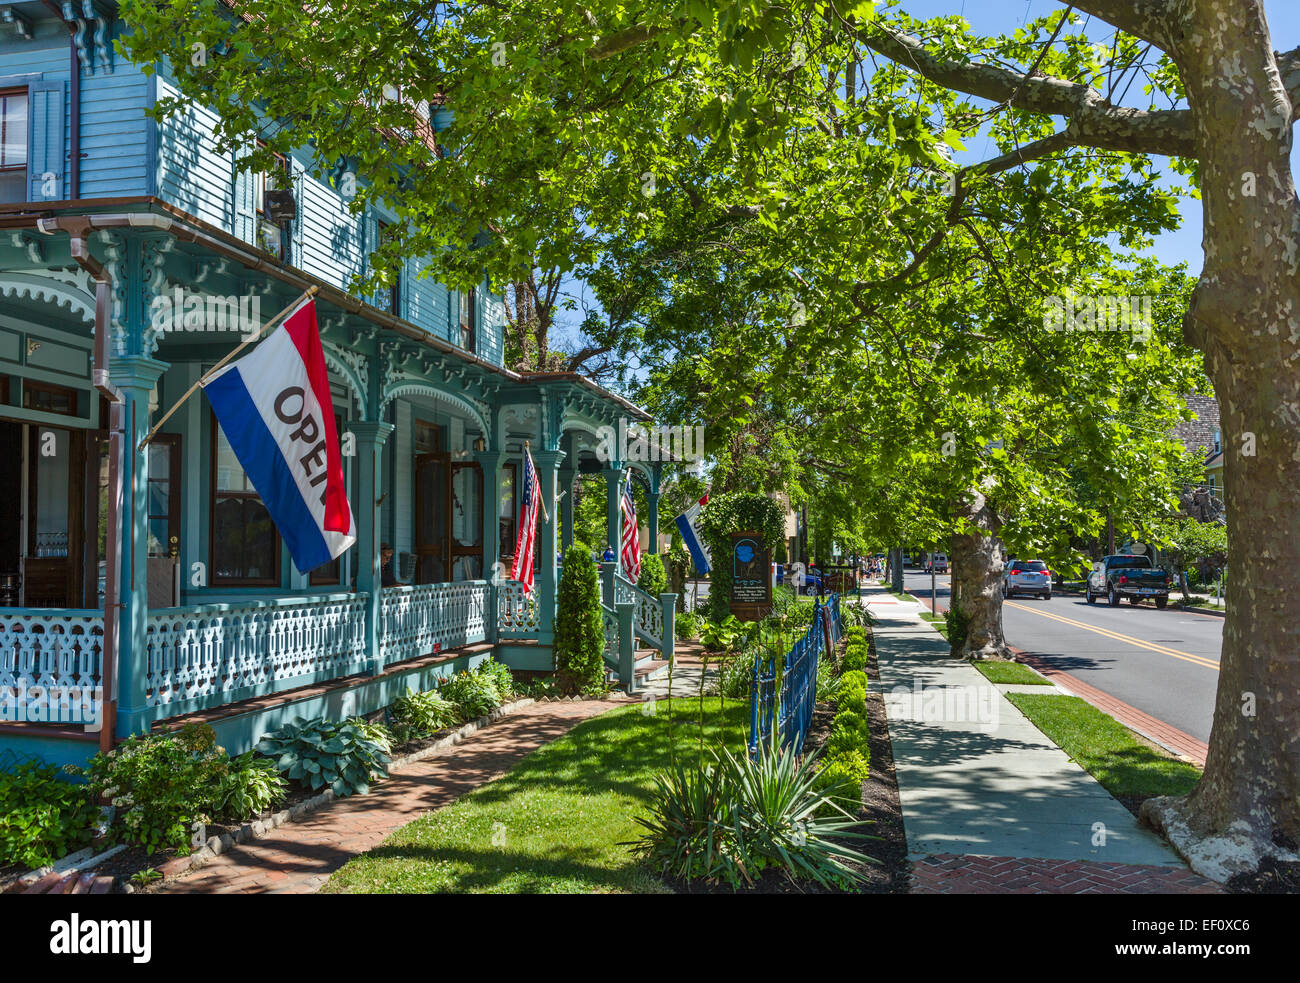 The Blue Rose, historic old inn and restaurant on Washington Street, Cape May, New Jersey, USA - Stock Image